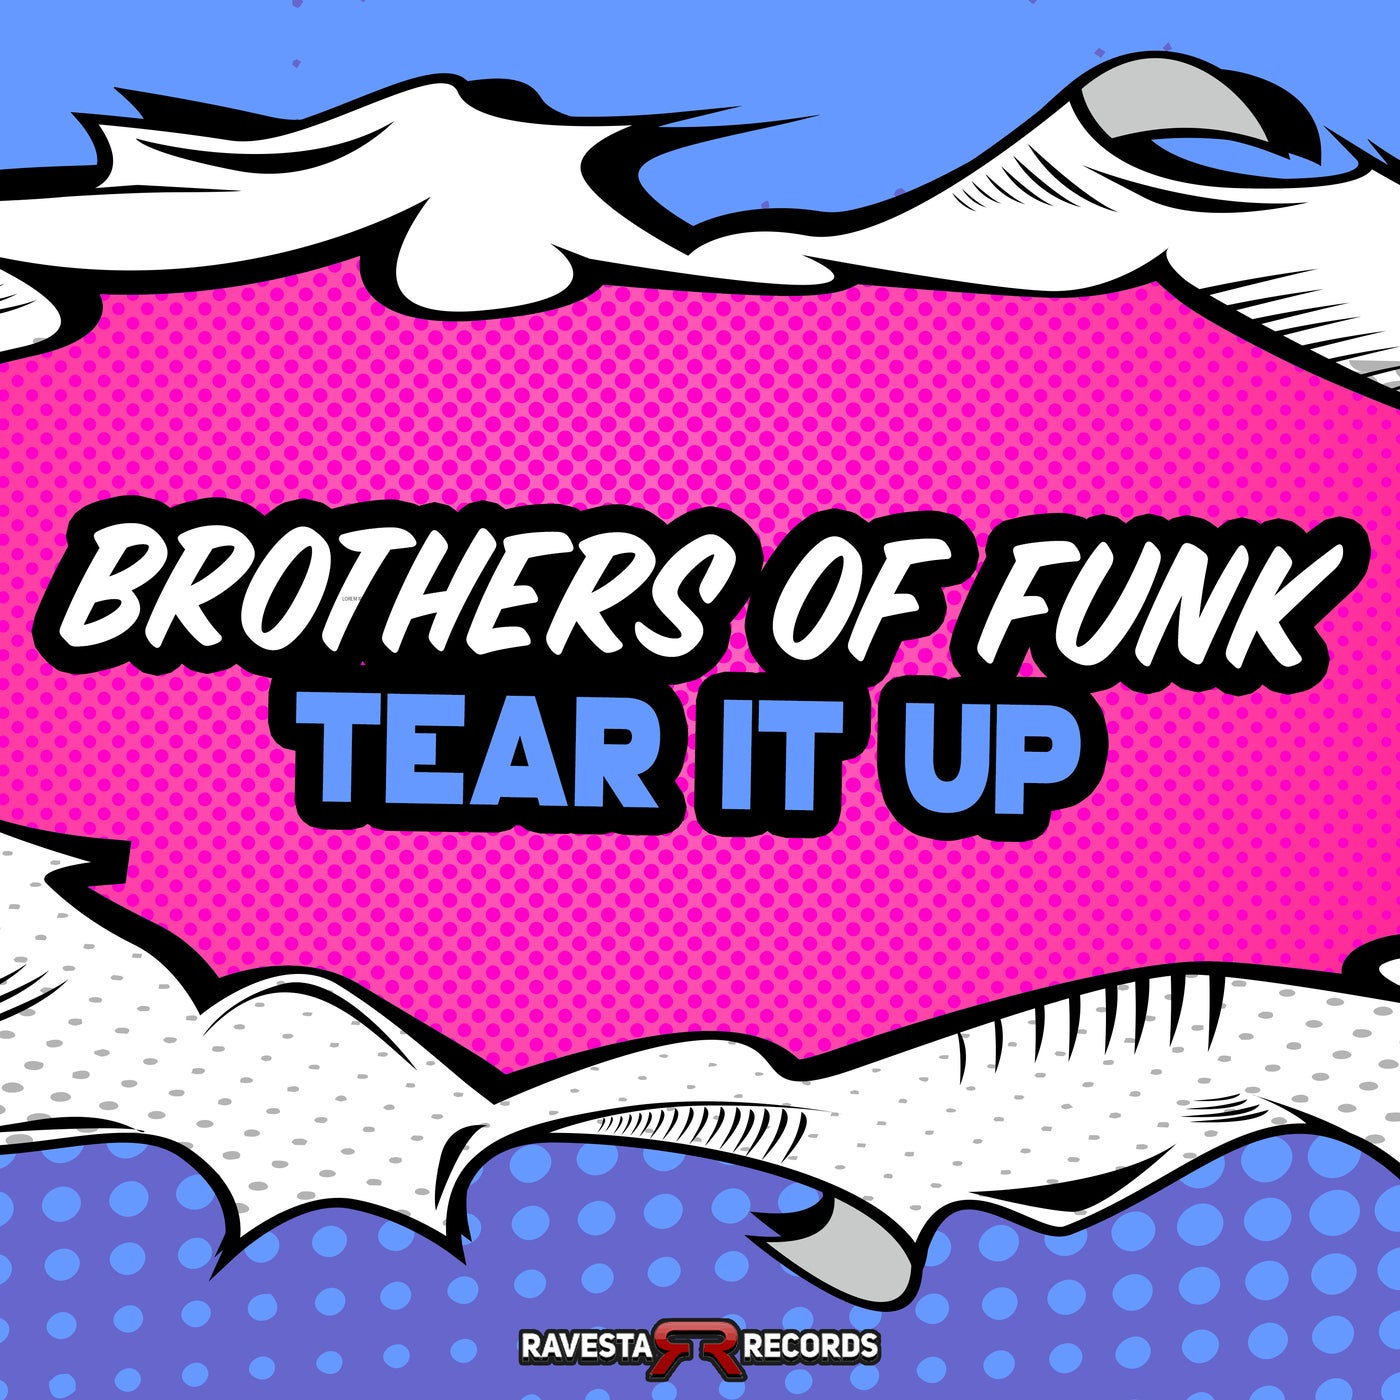 Tear It Up (Original Mix)